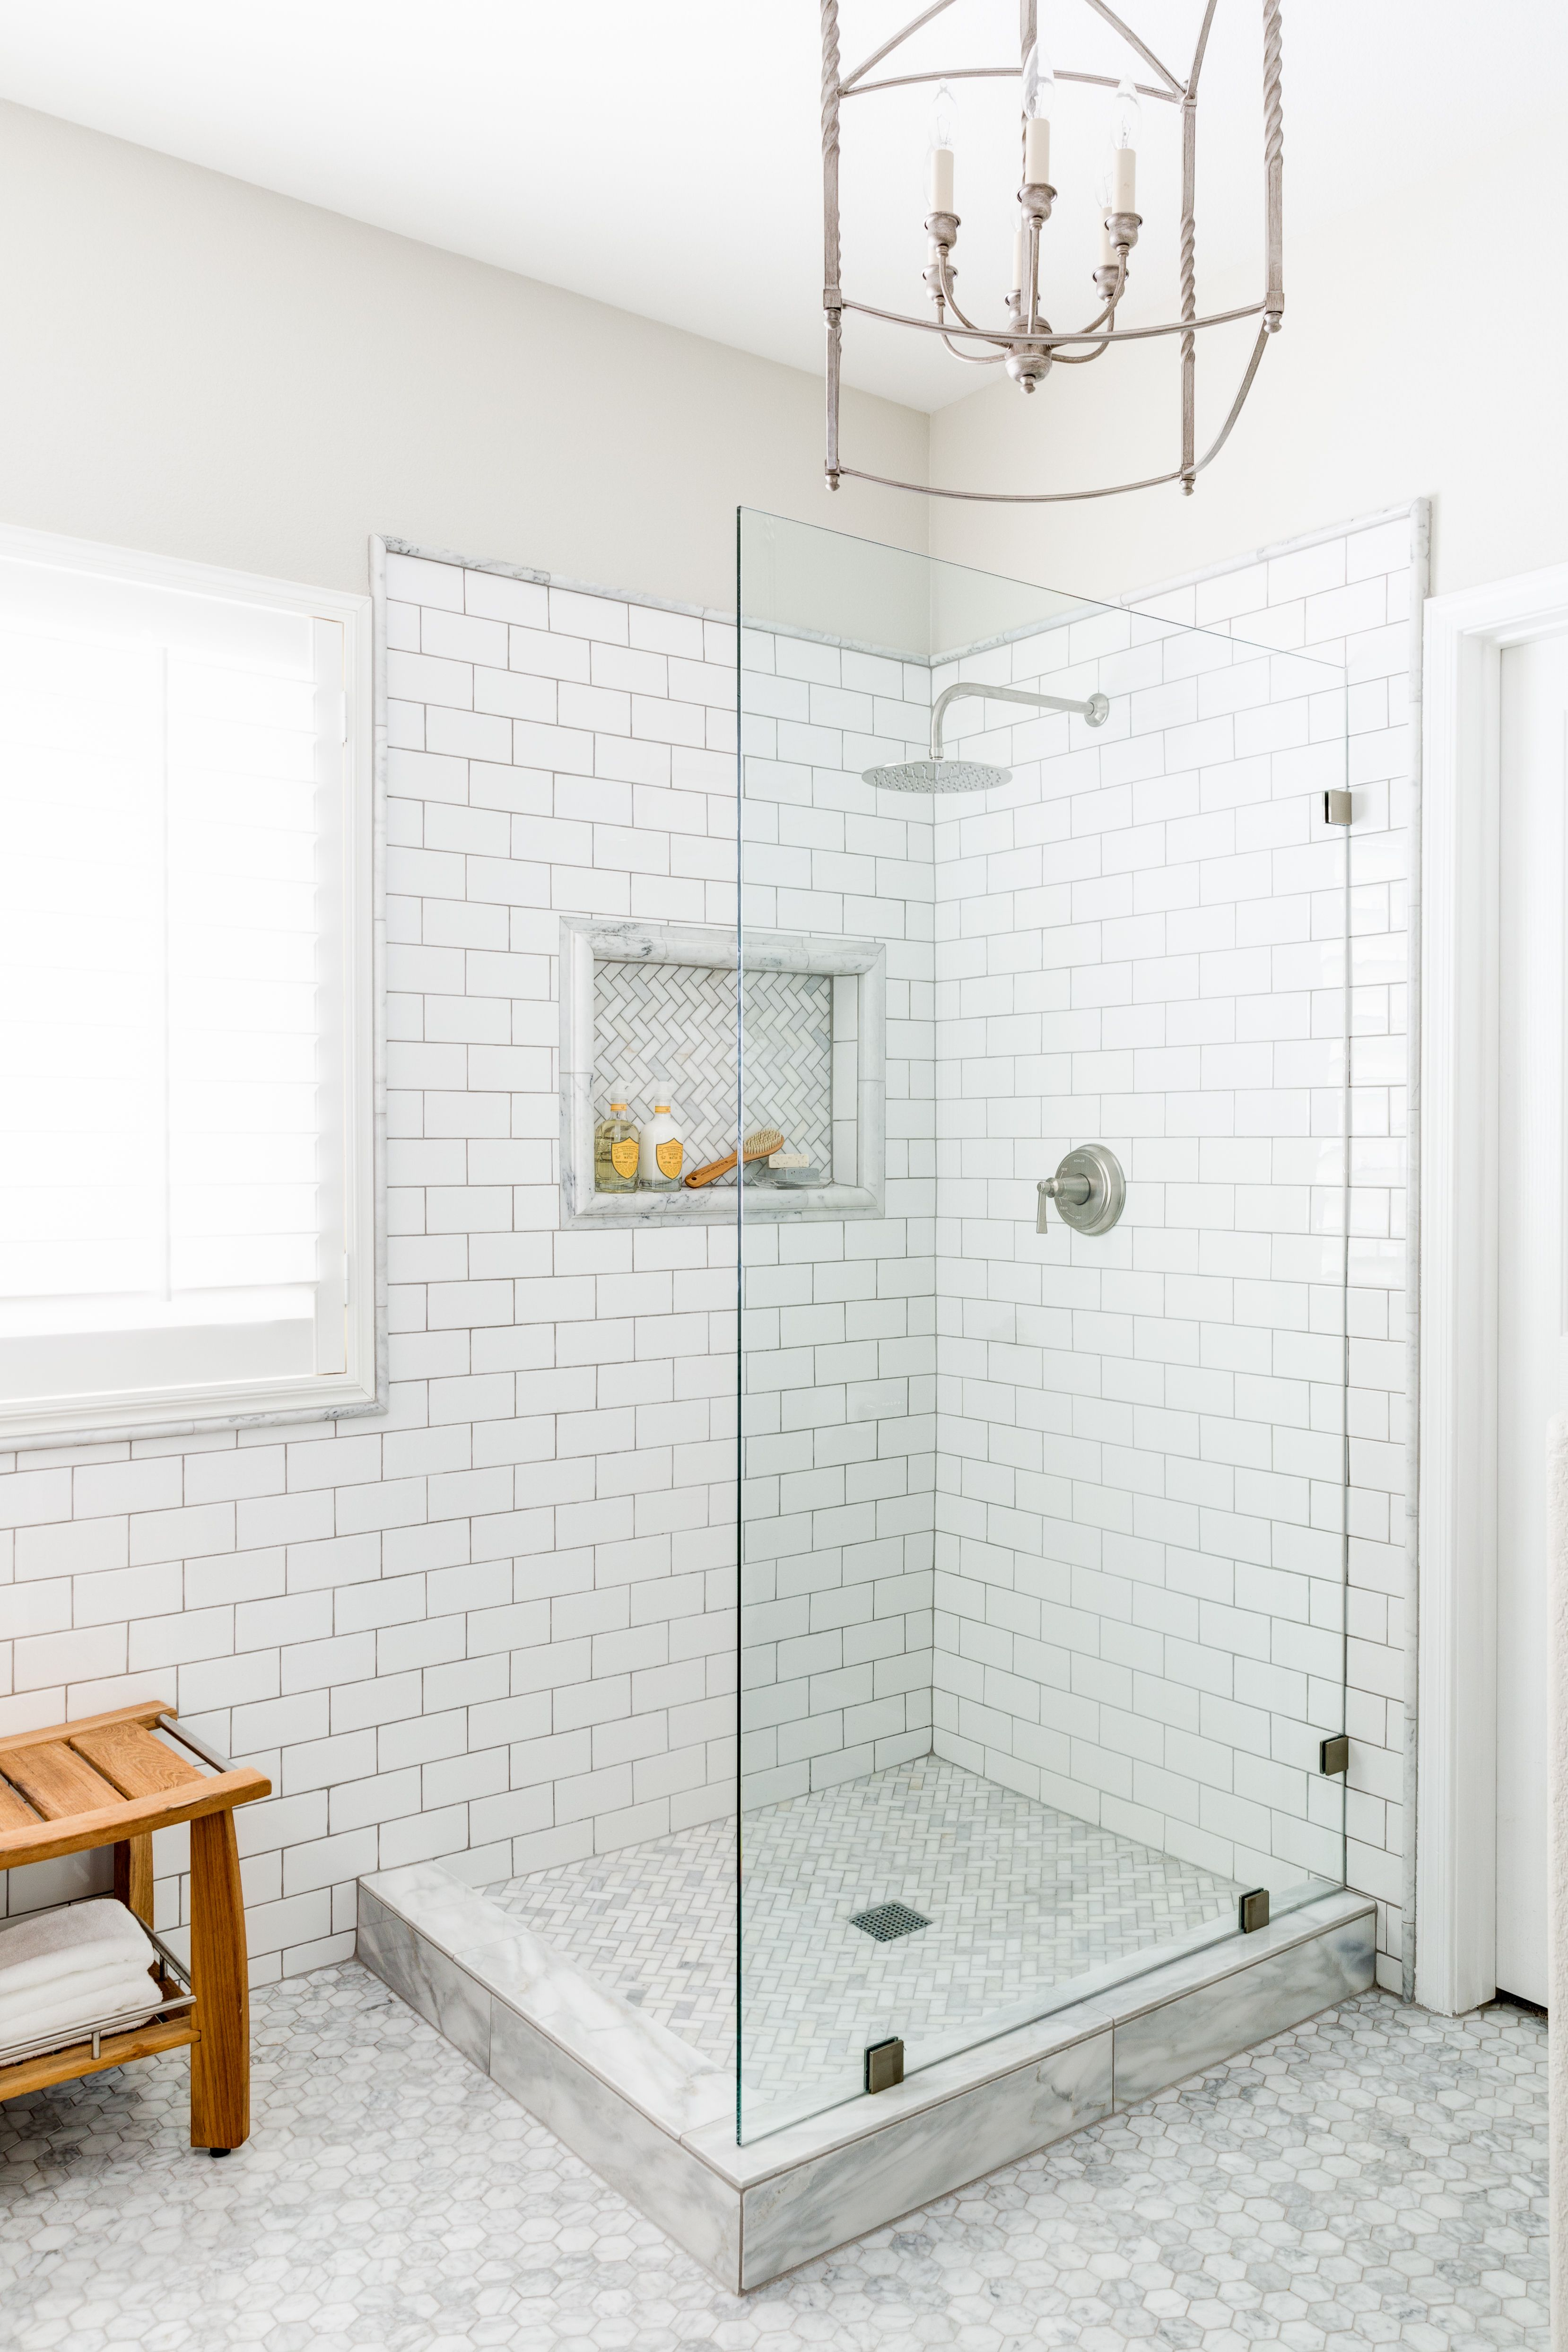 Lexi westergard design vermont remodel master bathroom for Marble master bathroom